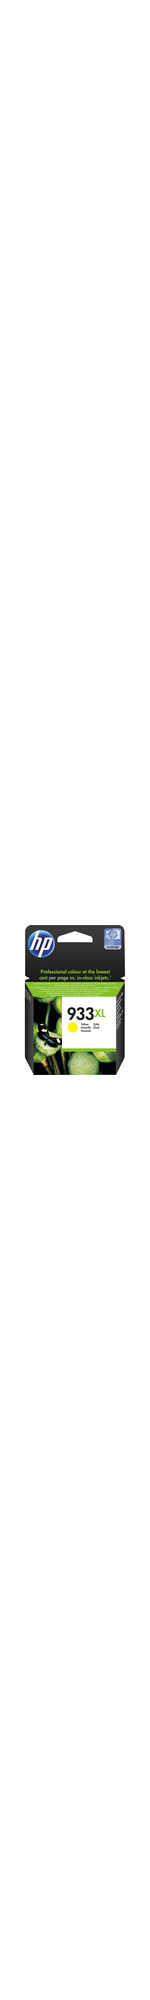 HP 933XL Yellow Ink Cartridge - CN056AE#BGY